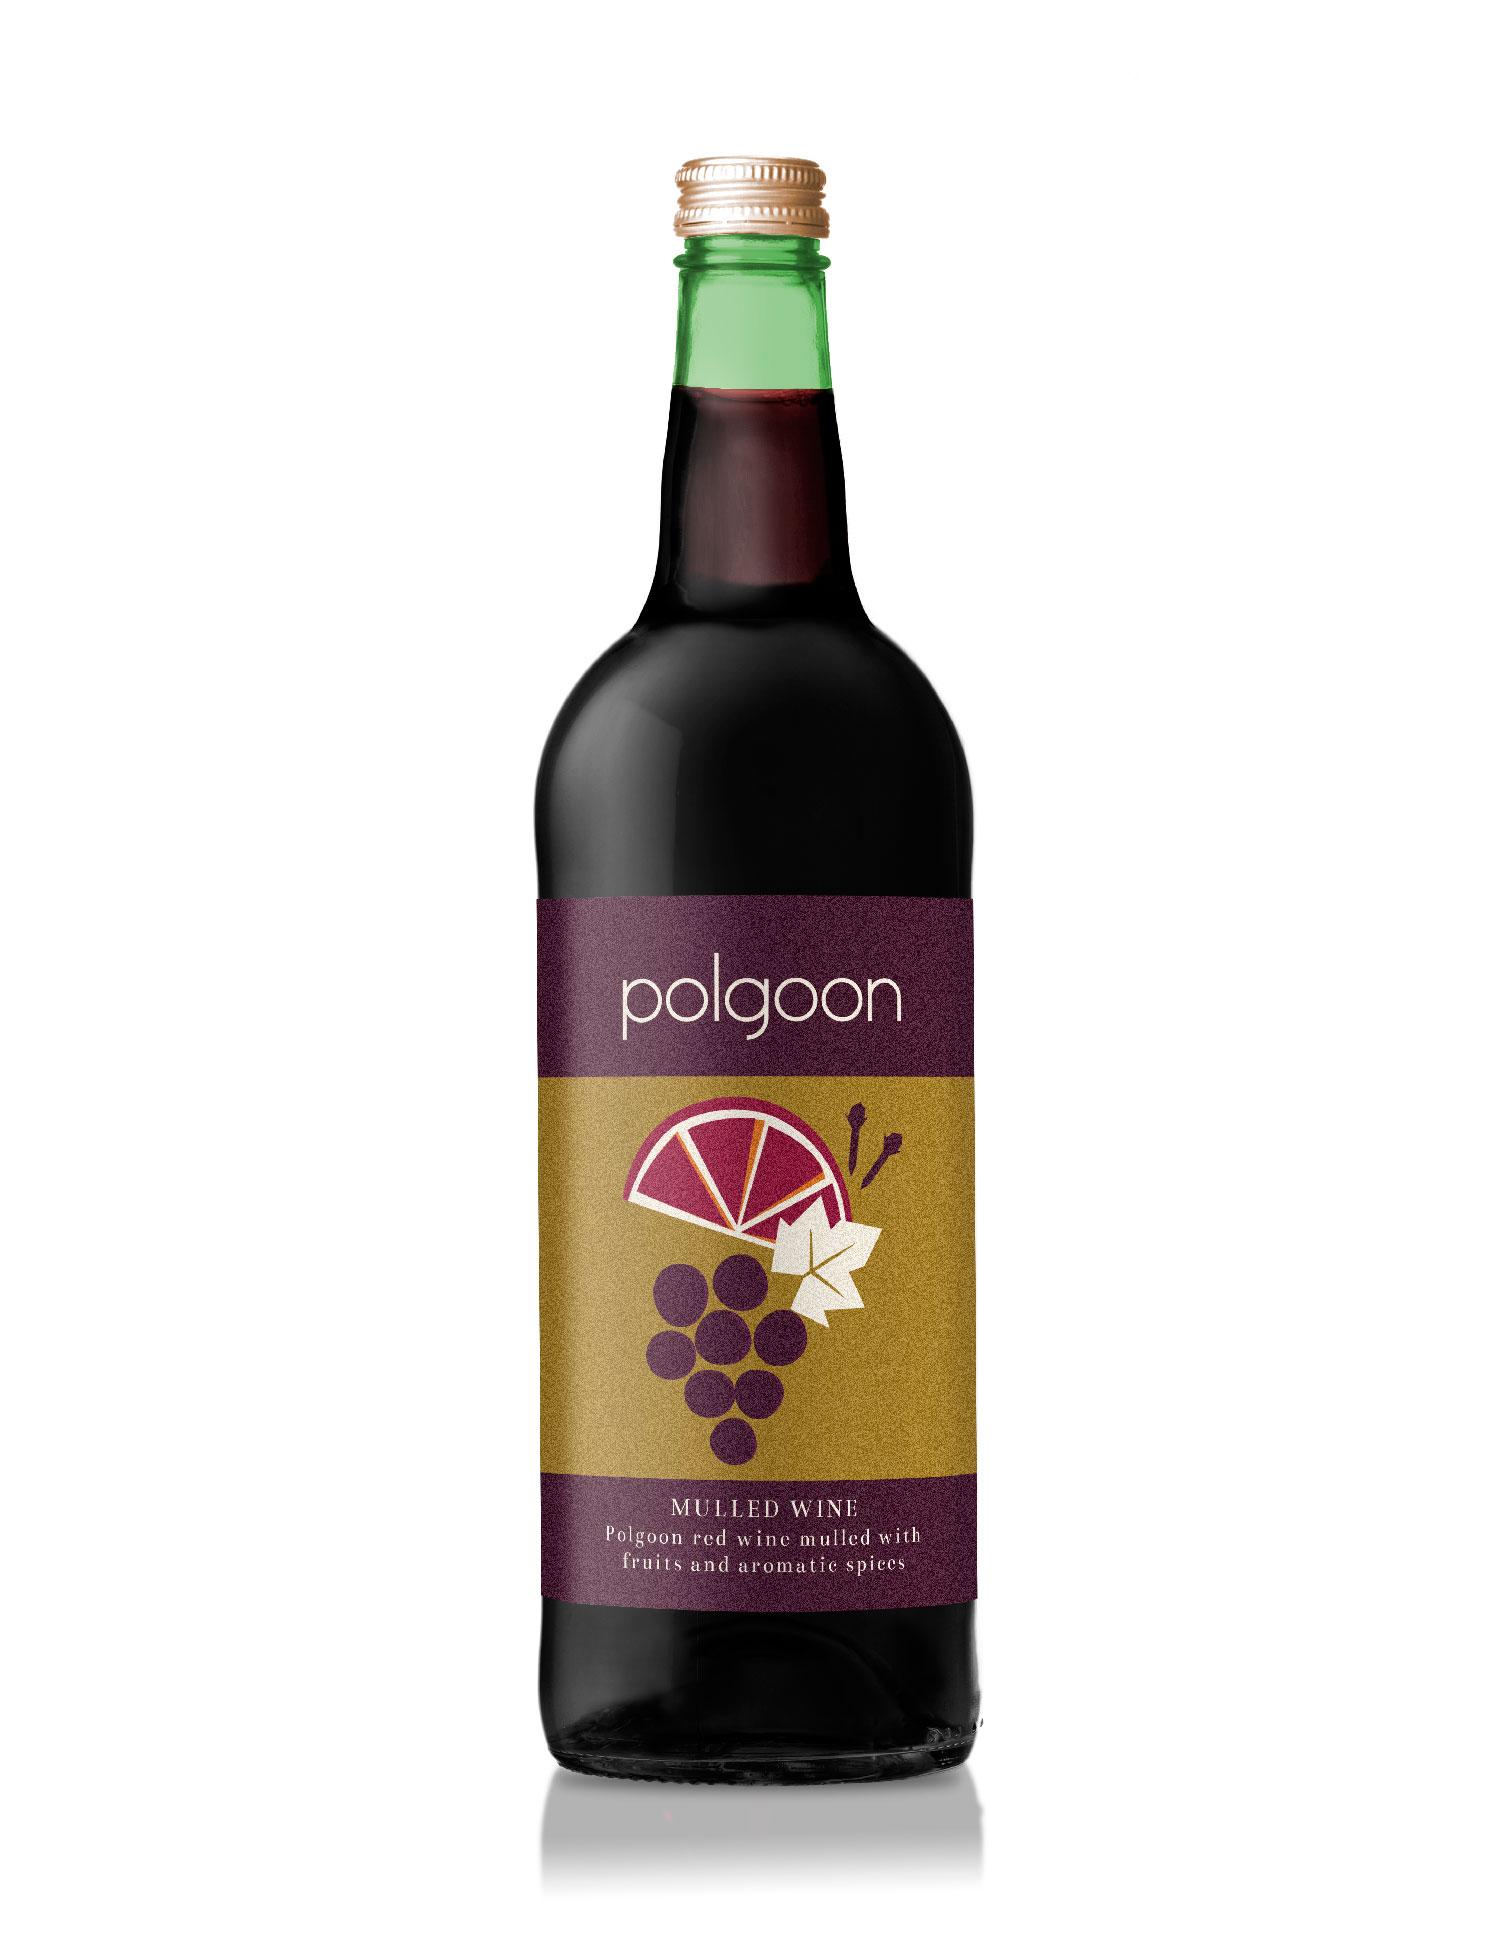 Polgoon mulled wine